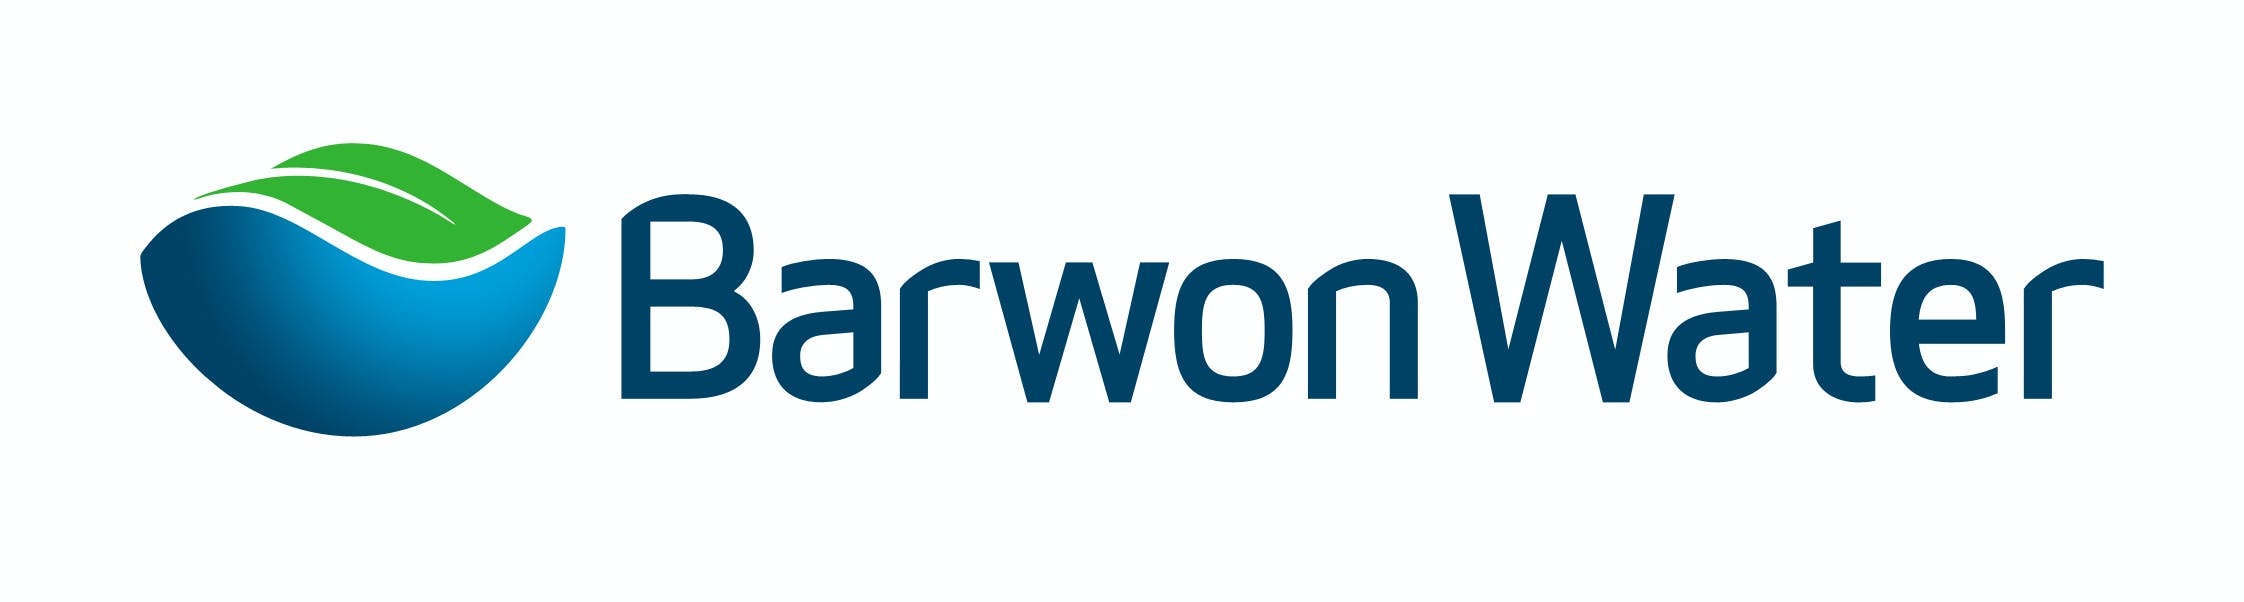 Your Say at Barwon Water